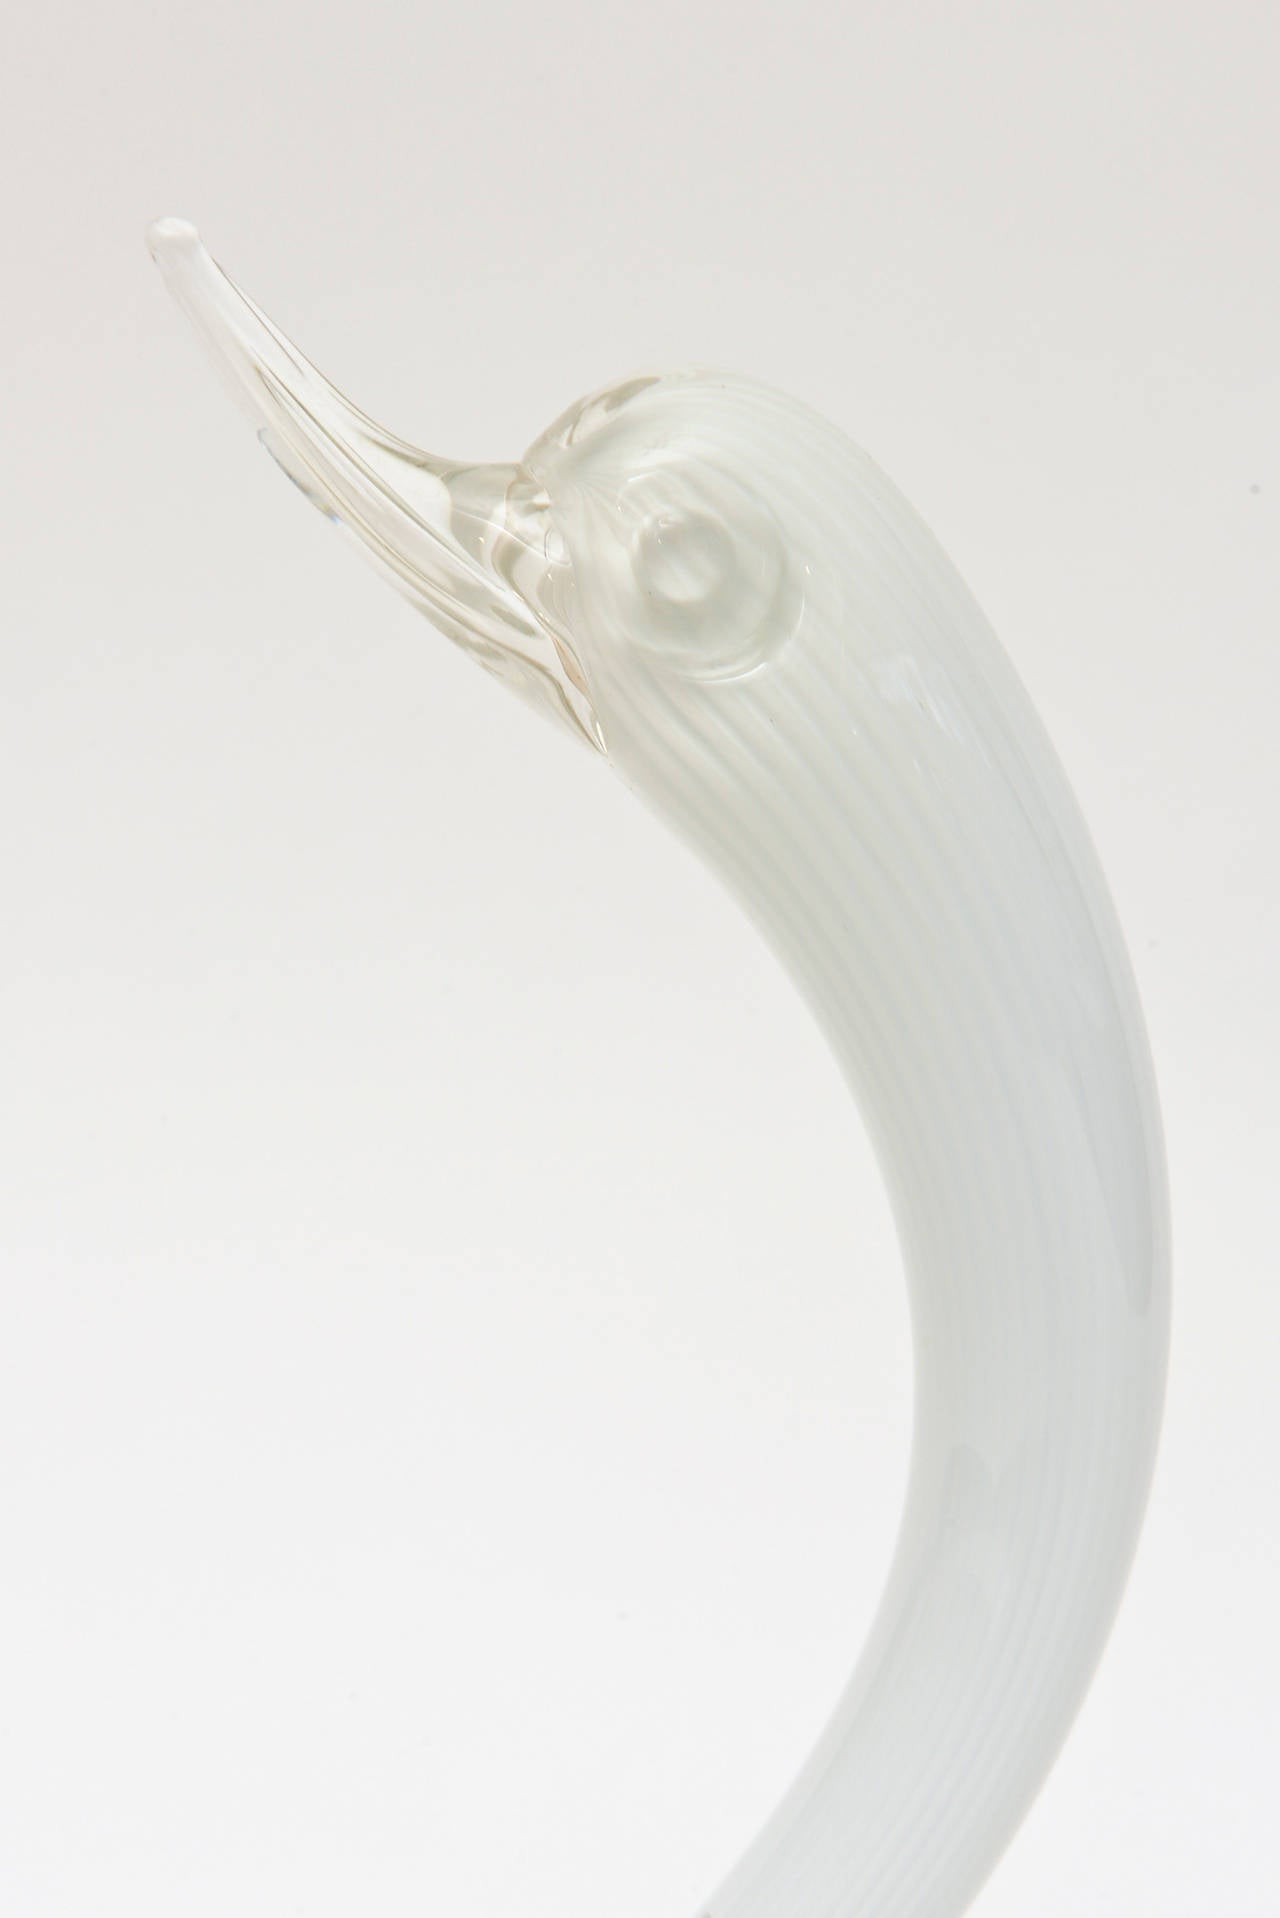 This lovely and graceful Italian Murano Seguso glass swan is white triple cased; white with clear on the outside. The lines of the feathers are abundant throughout. The beak is clear. It is signed but not legible. It is a beauty! It is attributed to